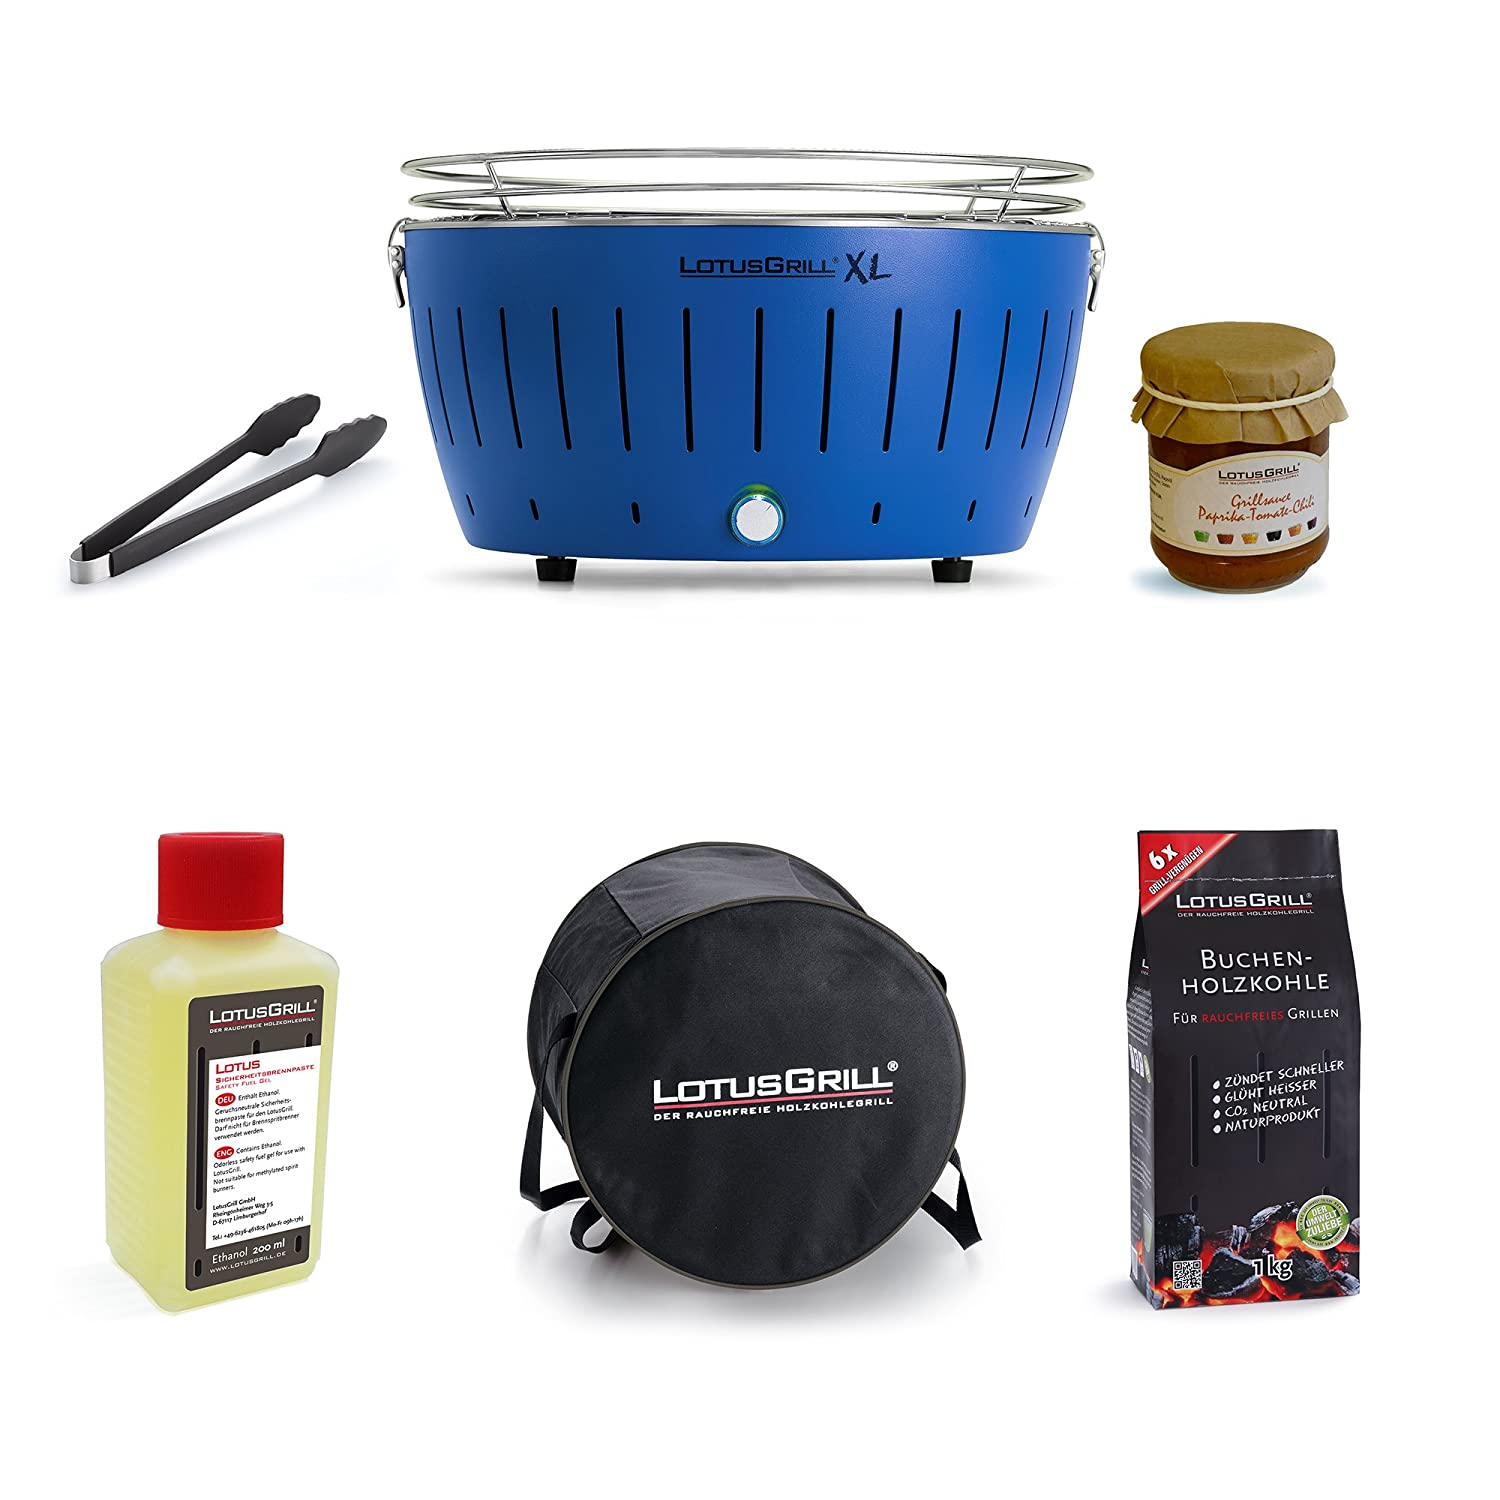 LotusGrill XL Starter Kit 1x LotusGrill XL Blue 1x 1Lighting Gel 200ml, 1Lotus Grill Beech Charcoal 2.5kg Tongs Blue, 1X Sauce Special Lotus Grill, 1X Carry Bag, Smoke-Free Charcoal Tabletop Grill Only Latest Technology. (Blue)